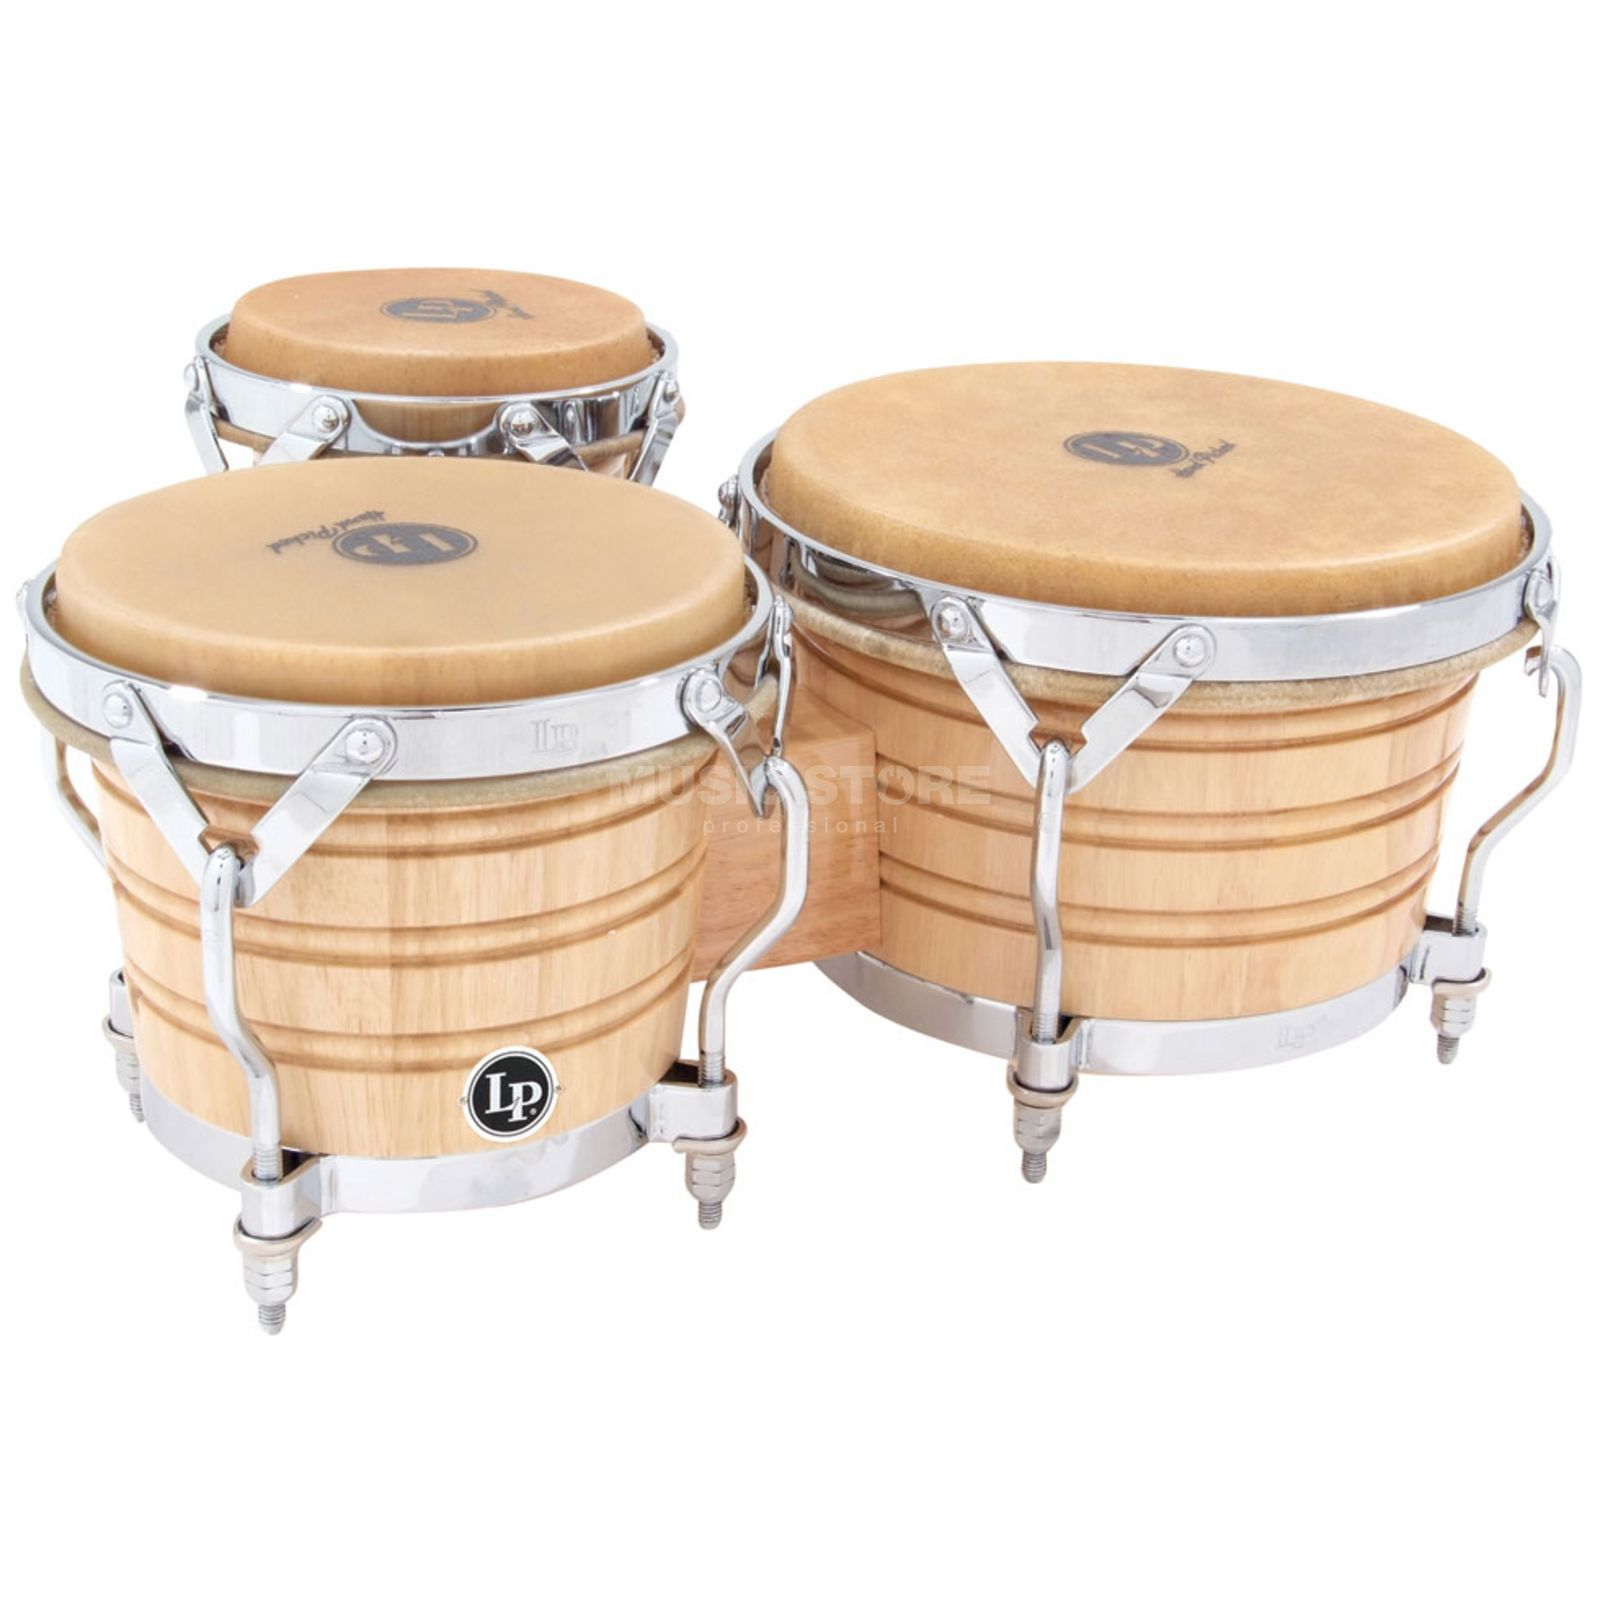 Latin Percussion Triple Bongos LP202-AW, Generation III, Wood Produktbillede